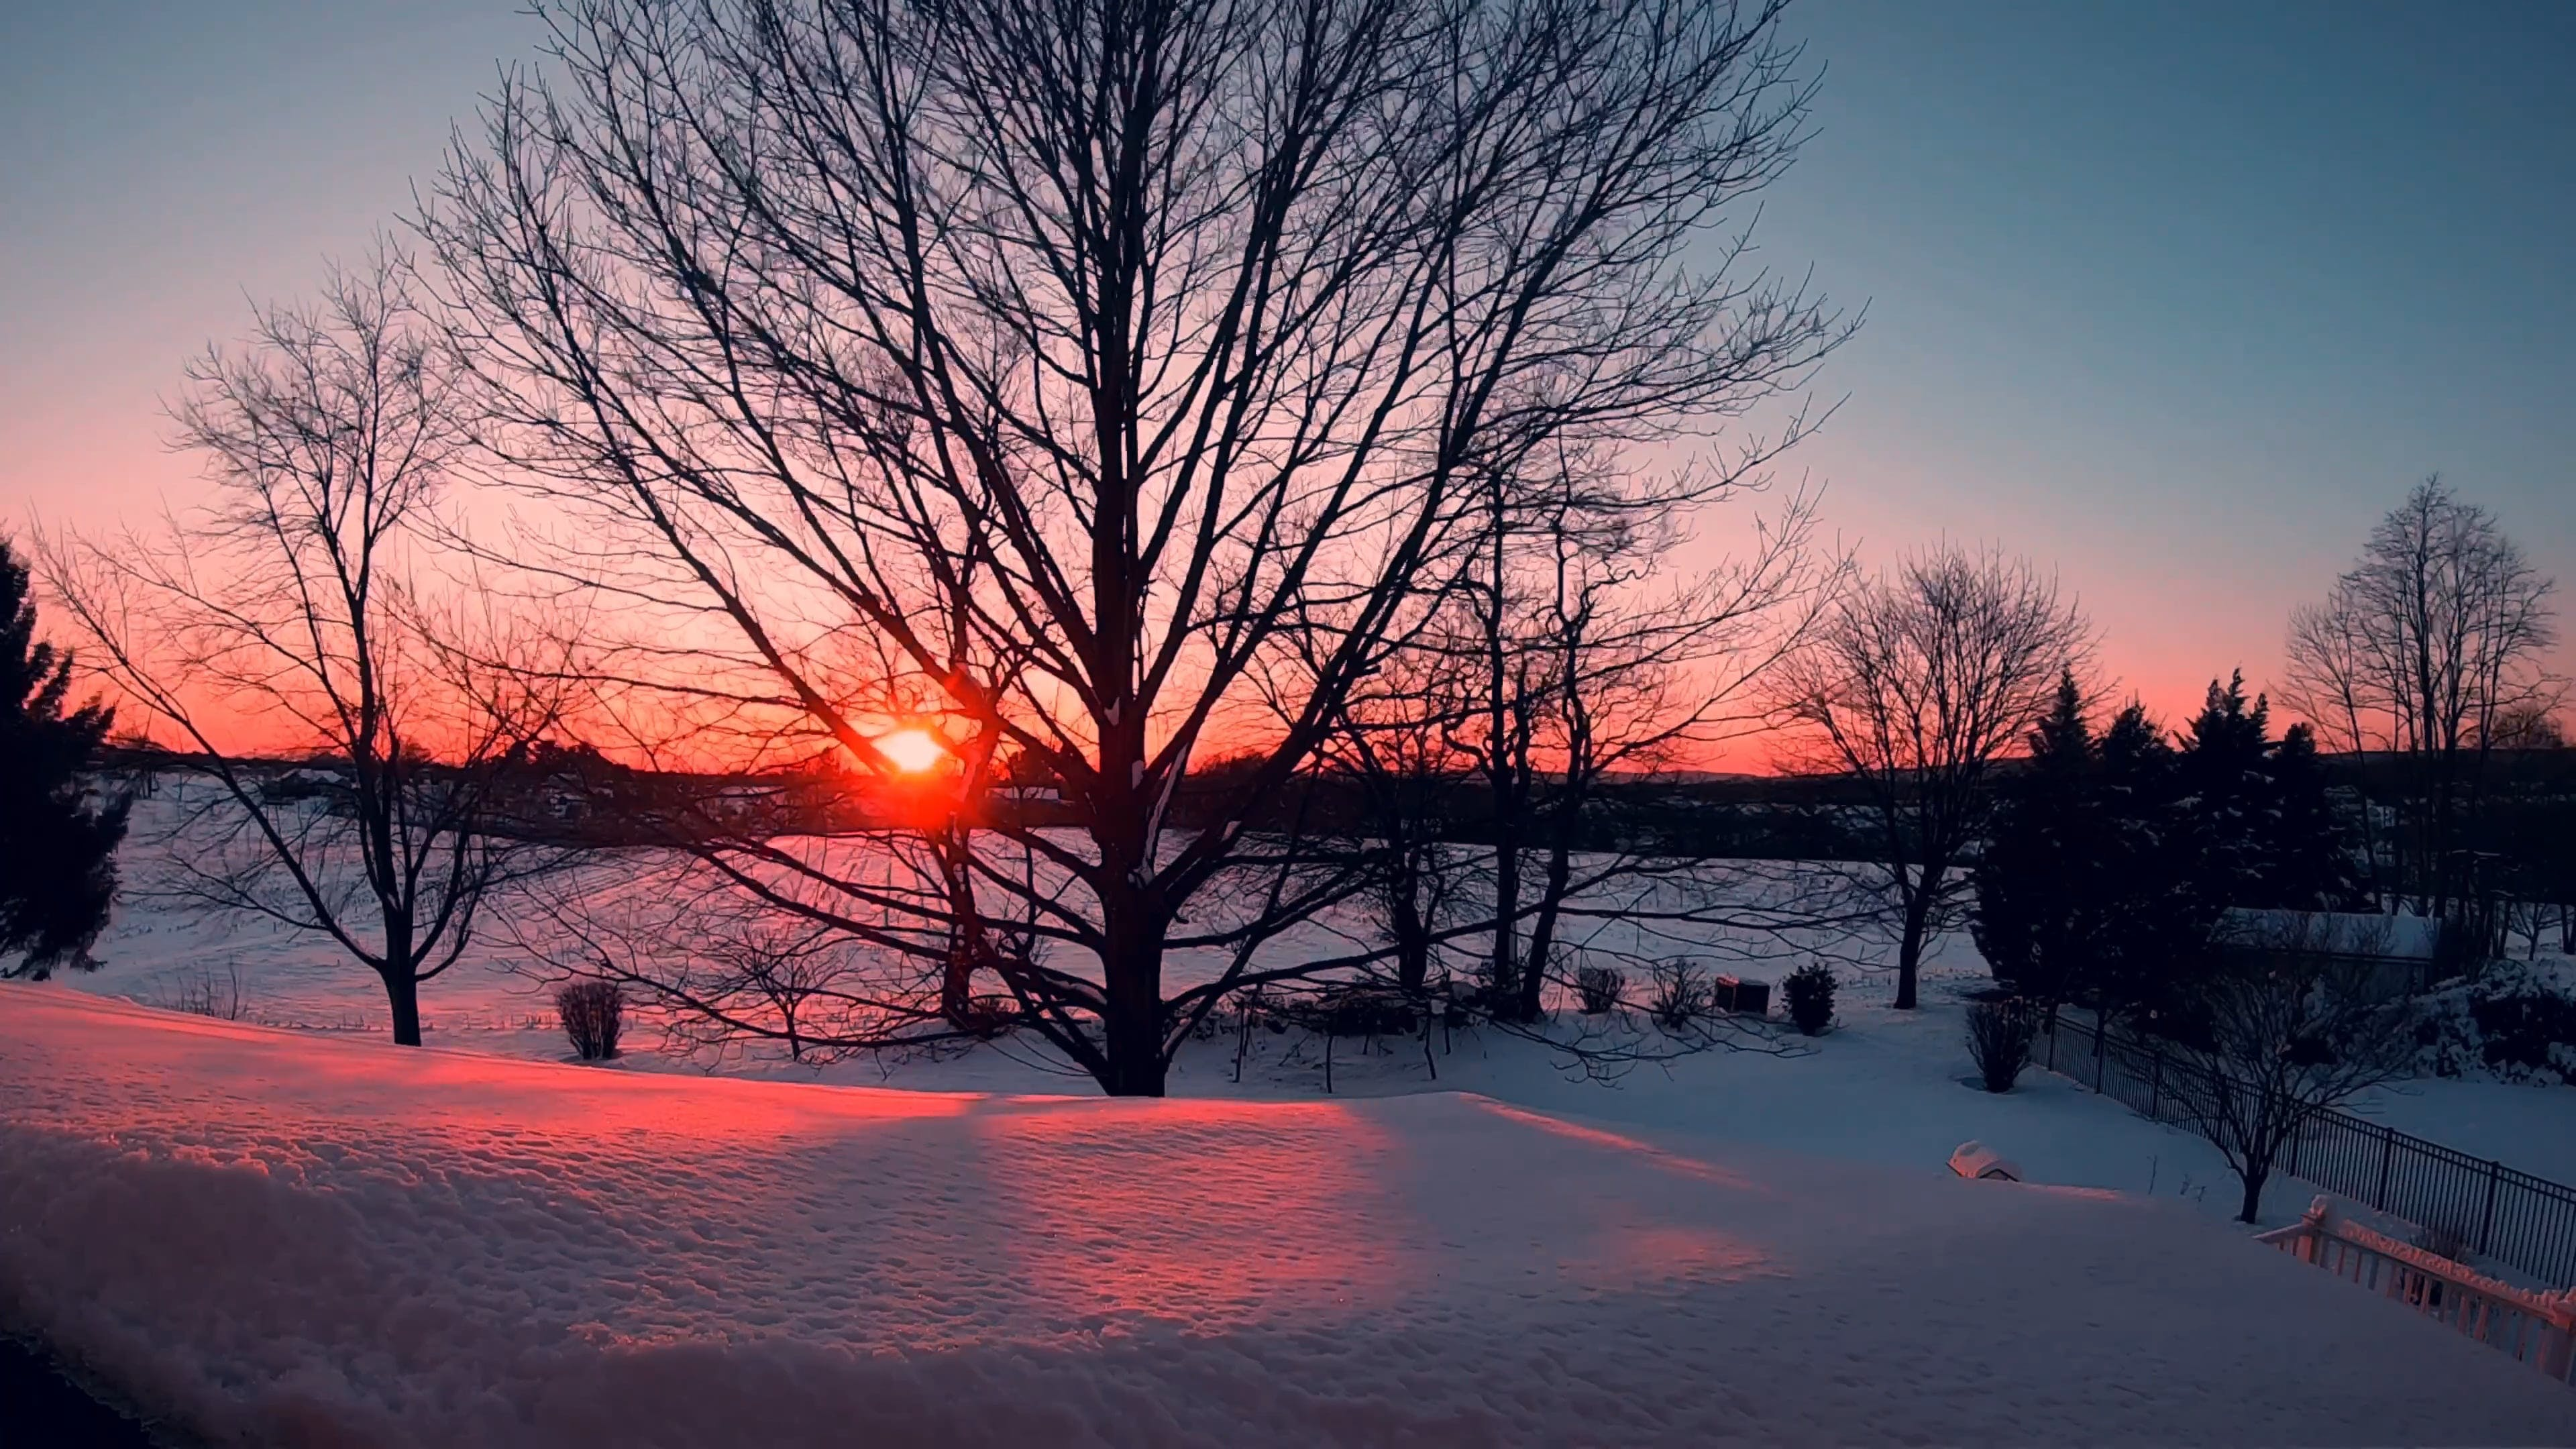 Sunset View On A Winter Landscape